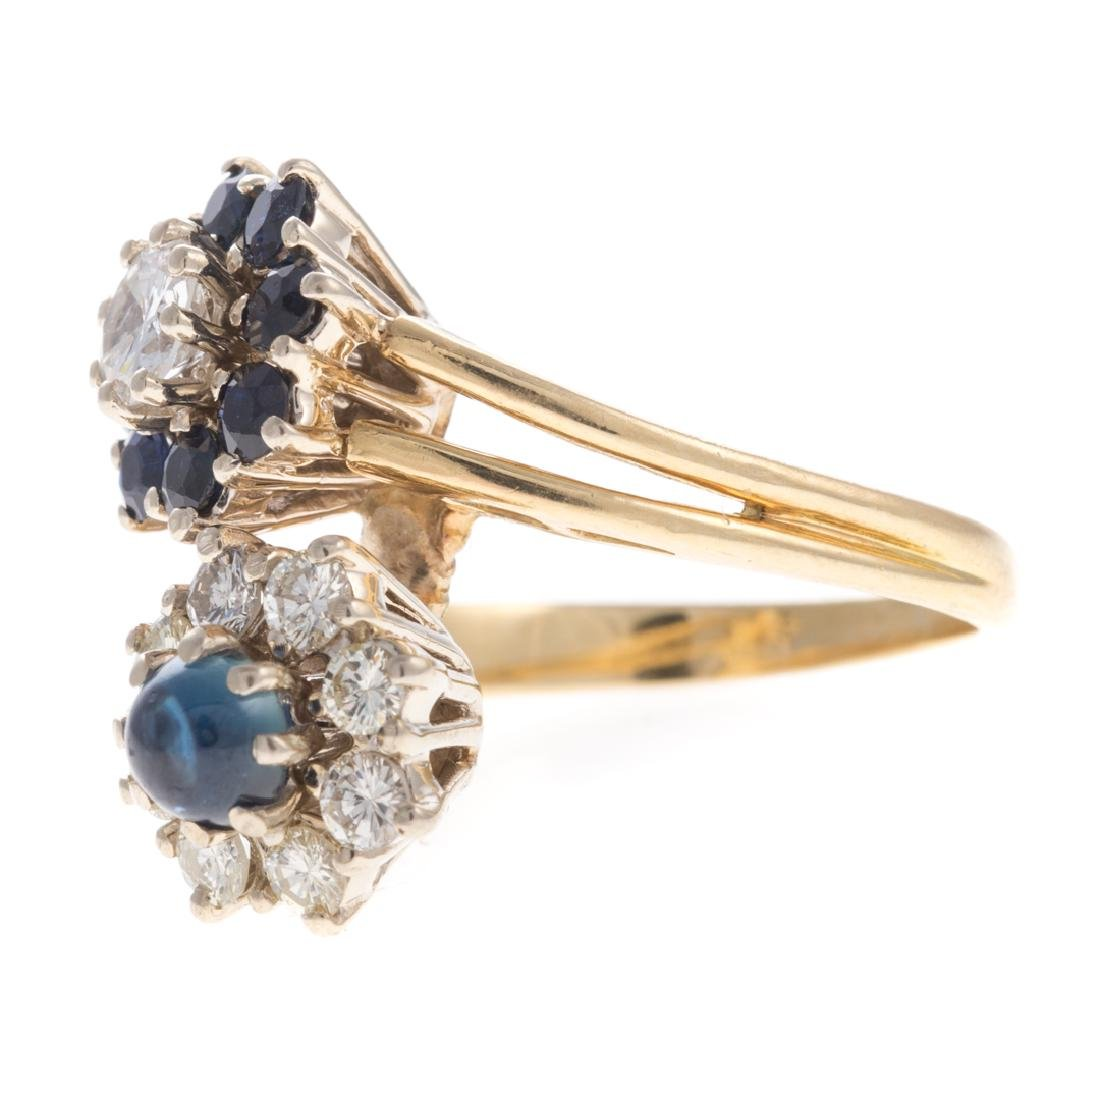 A Lady's Sapphire & Diamond Ring in 18K - 2